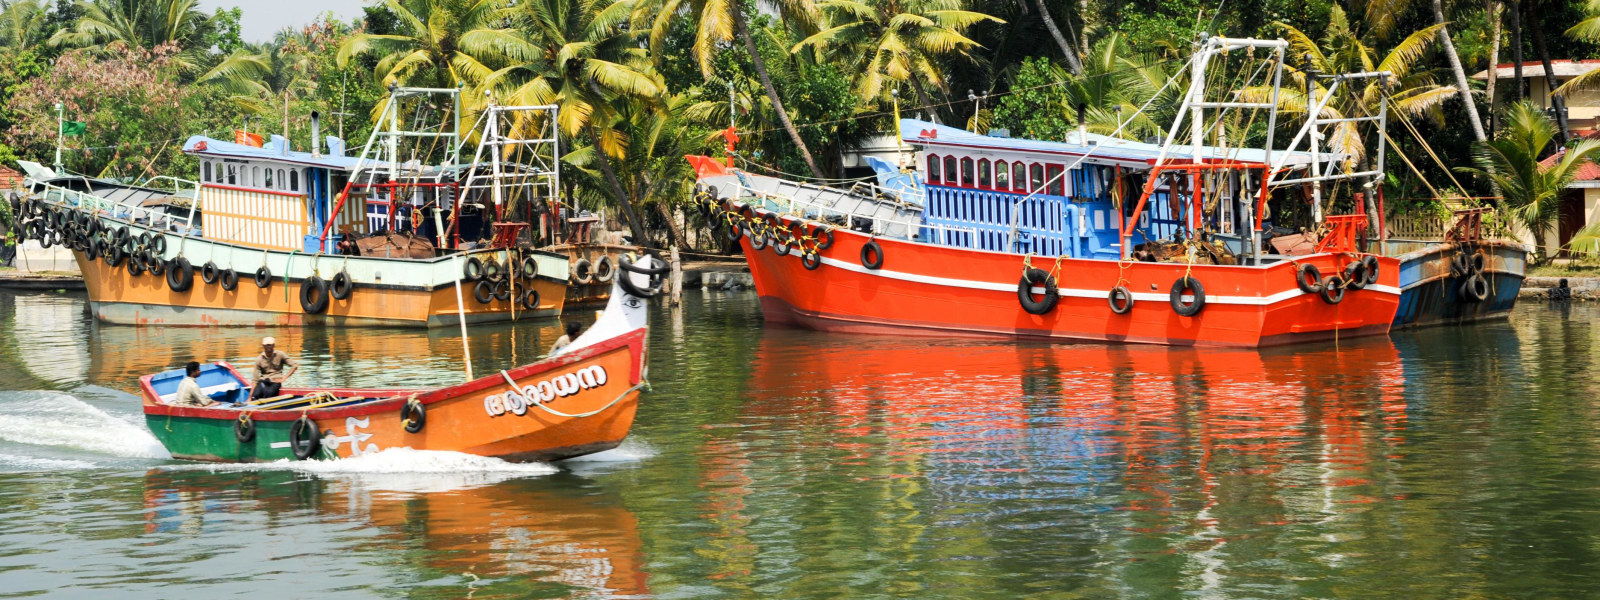 Kollam-Tour-Guide